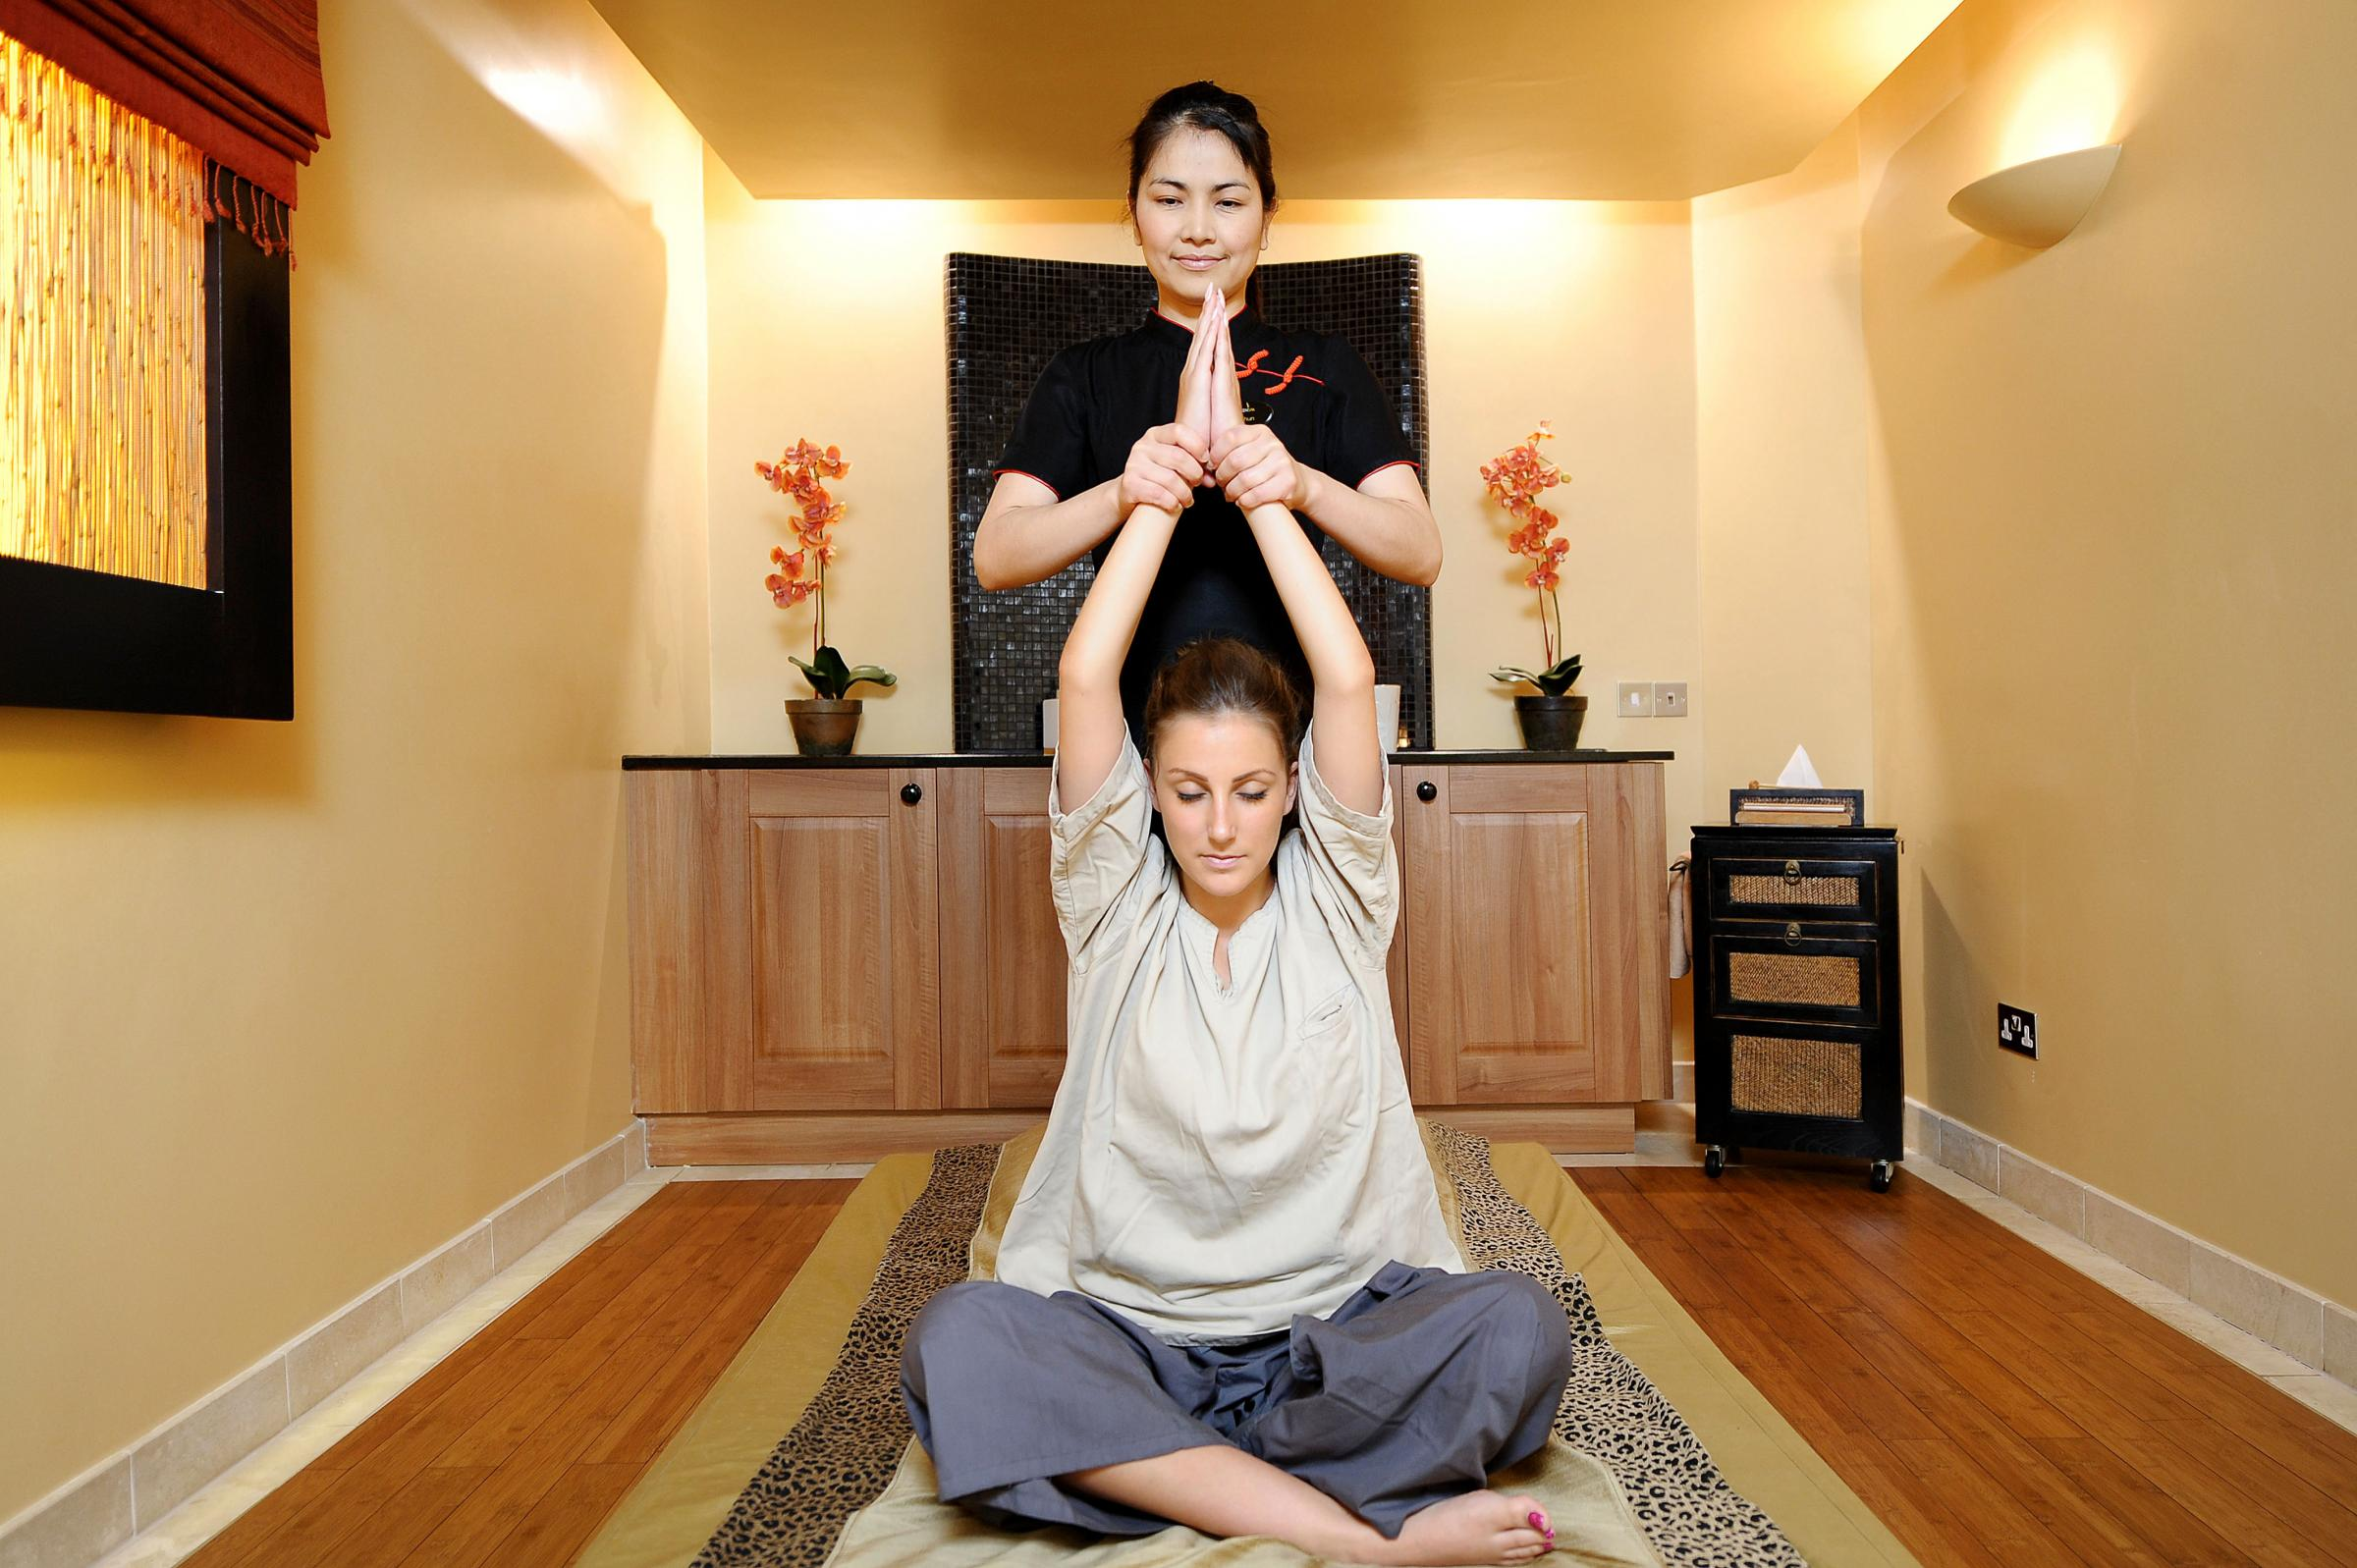 Workshop: Learn Thai Massage